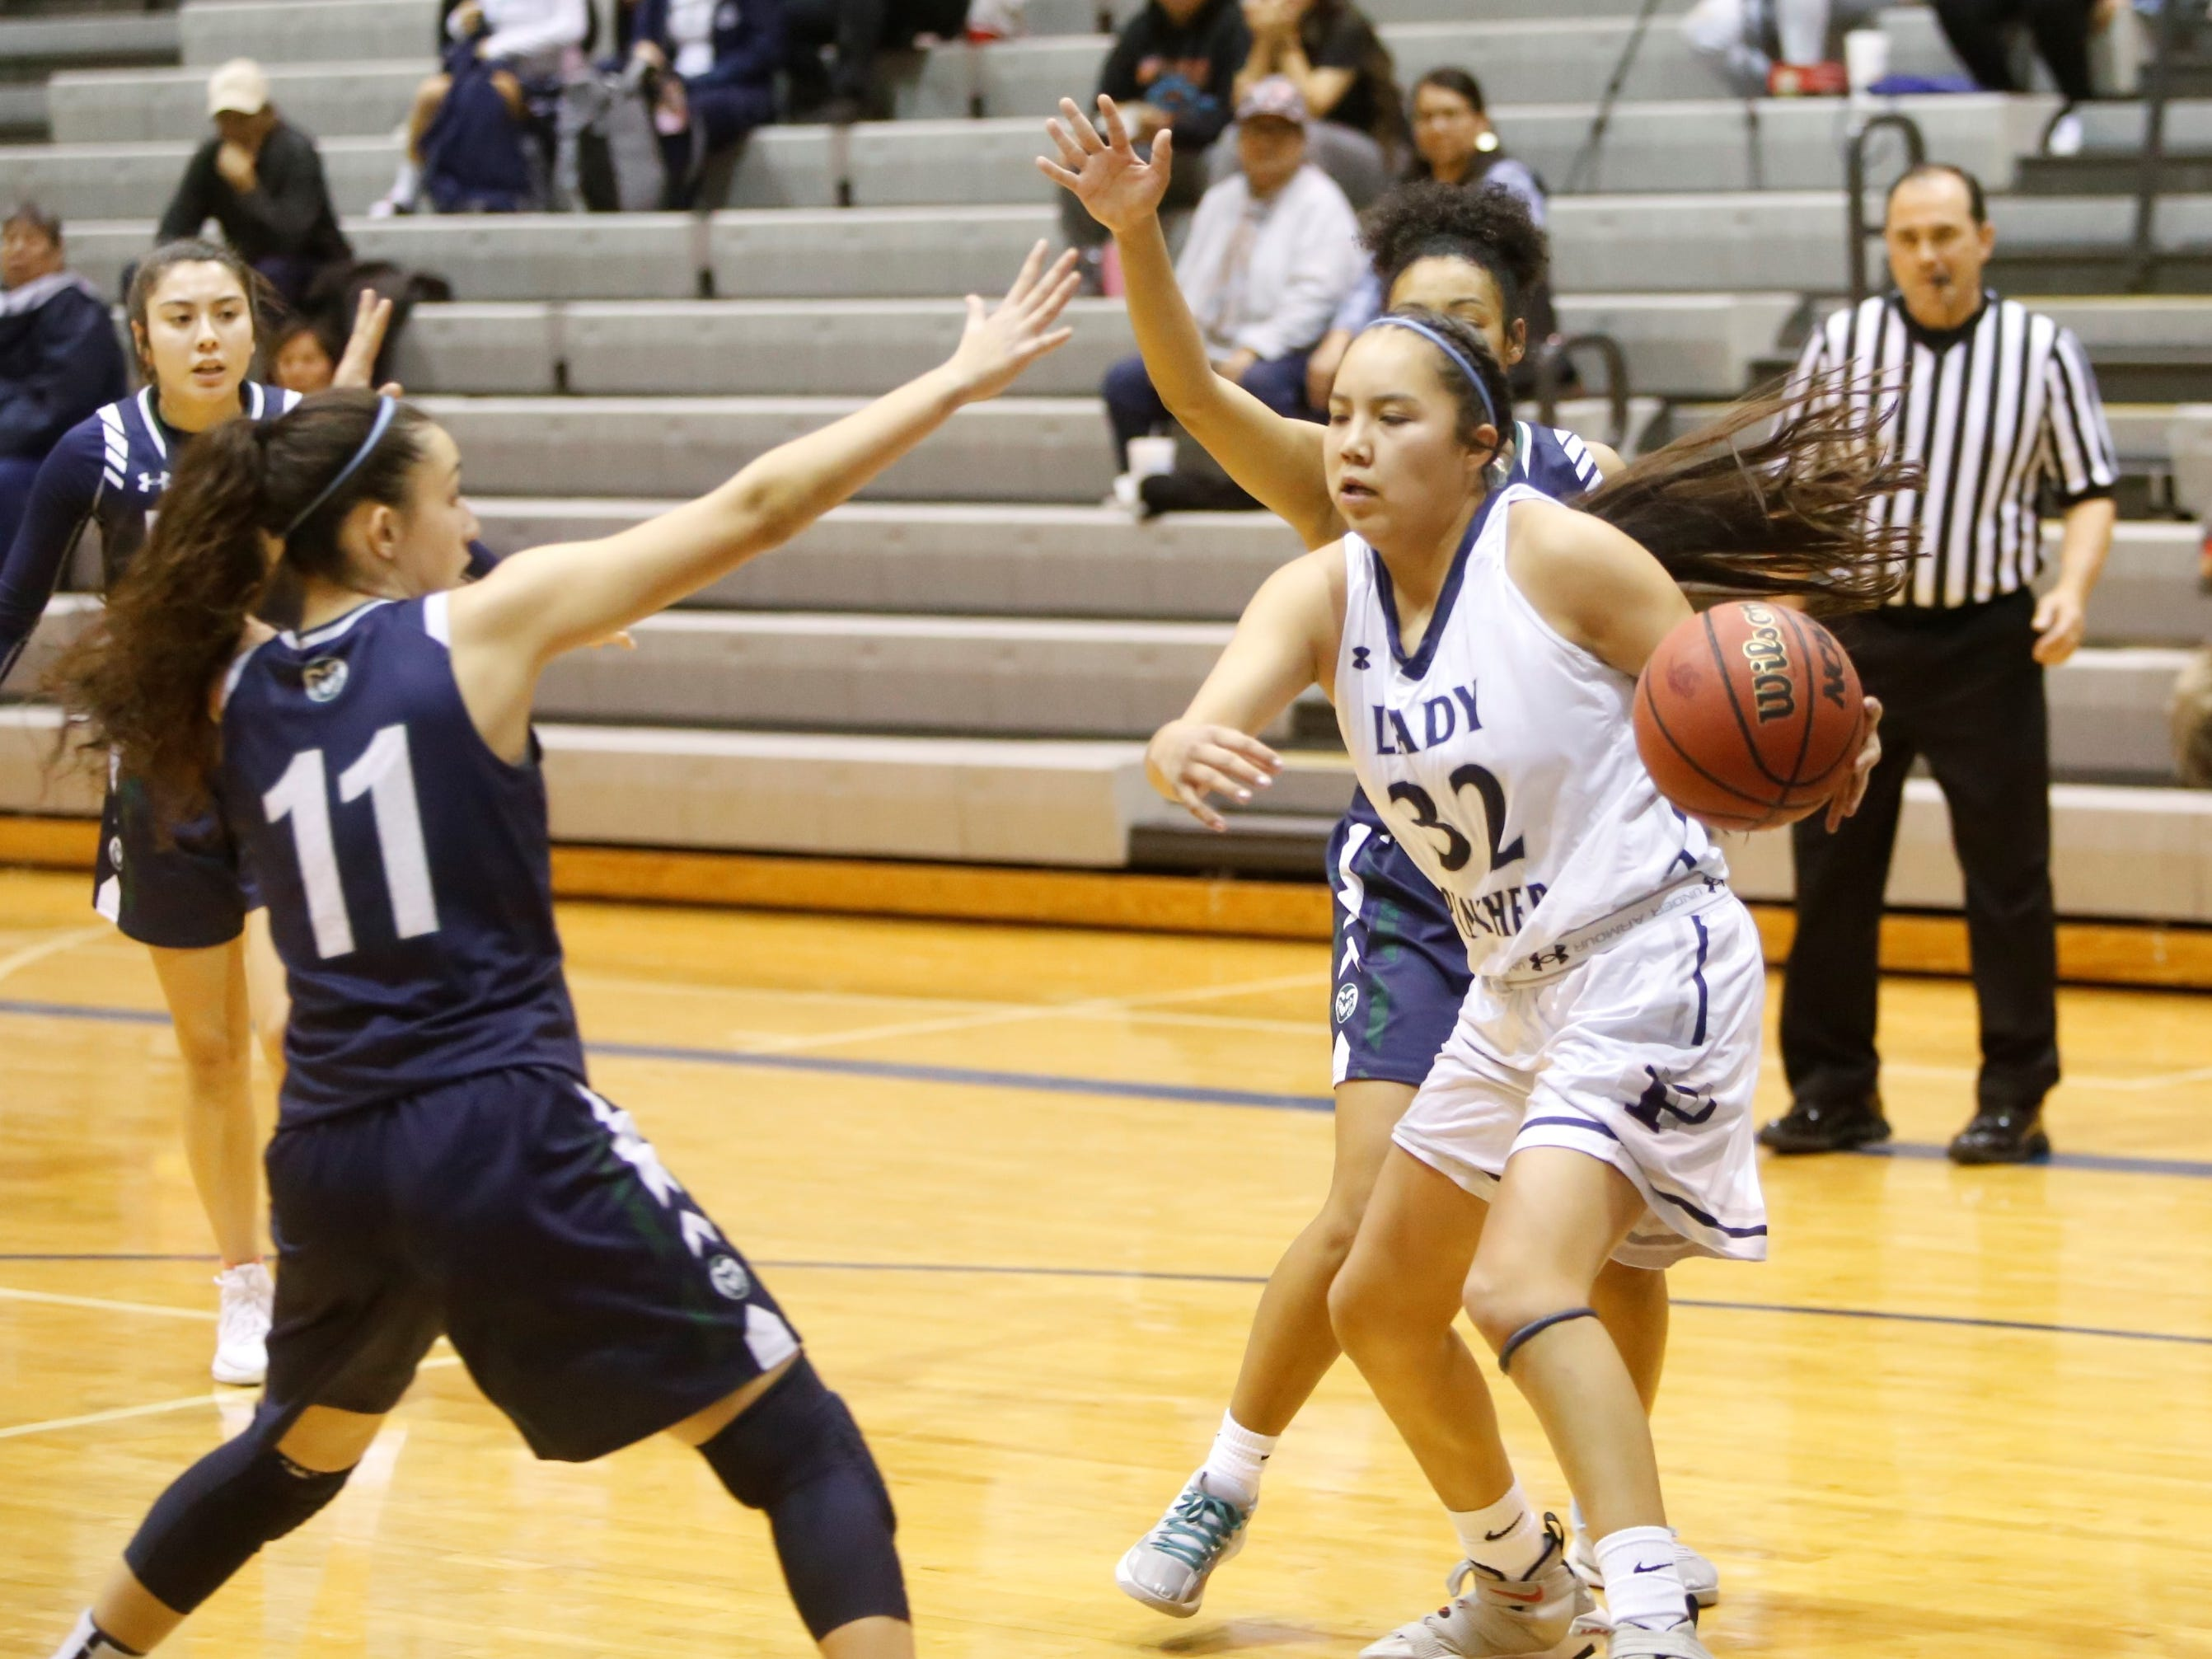 Piedra Vista's Lanae Billy drives along the baseline toward the basket against Rio Rancho during Saturday's game at Jerry A. Conner Fieldhouse in Farmington.